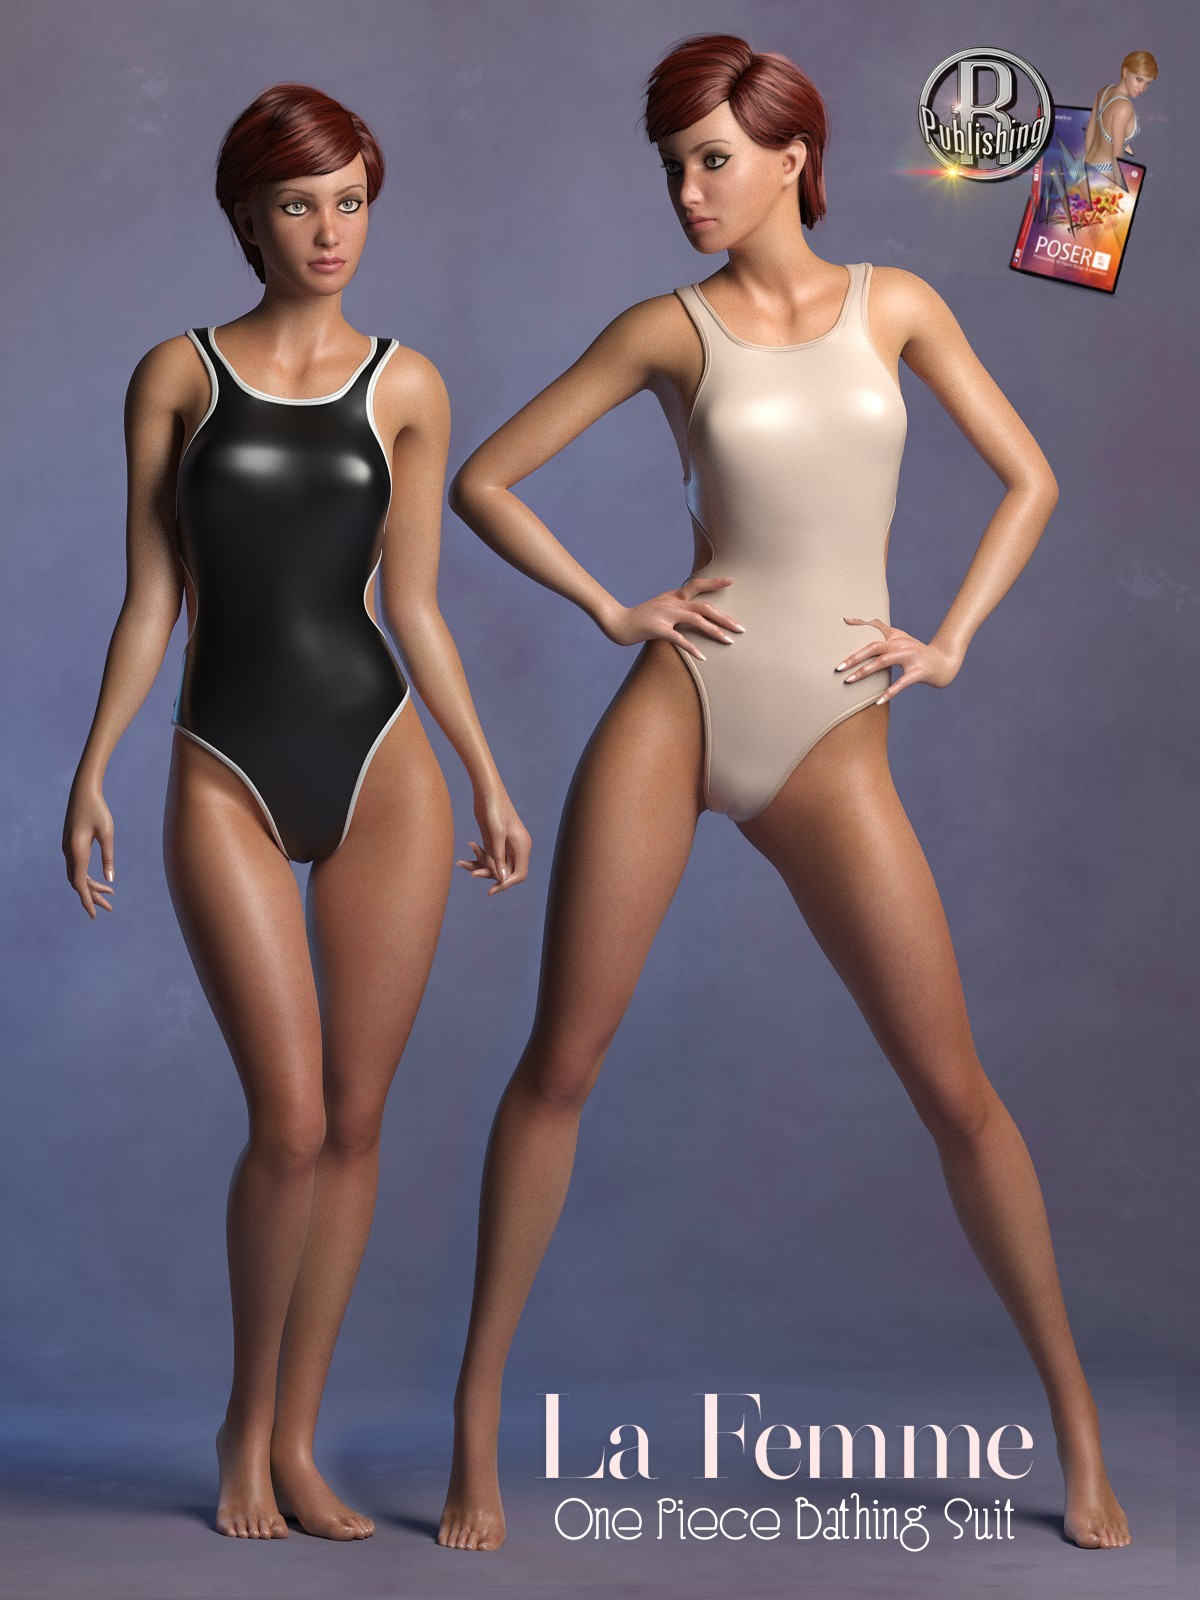 1 Piece Bathing Suit for La Femme for Poser 11 by RPublishing